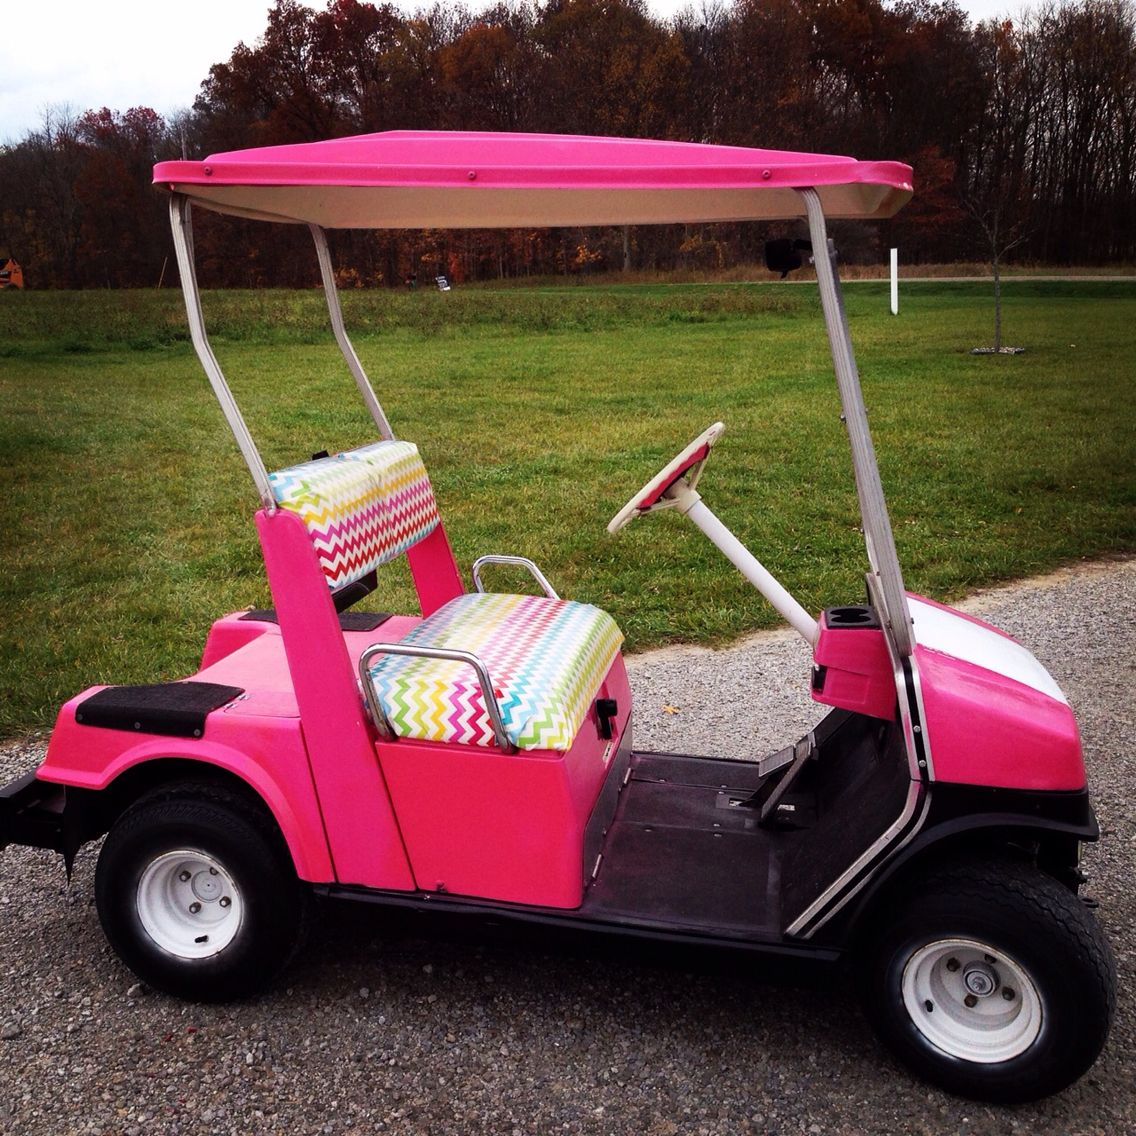 We Upcycled This 1972 Golf Cart Pink And White With